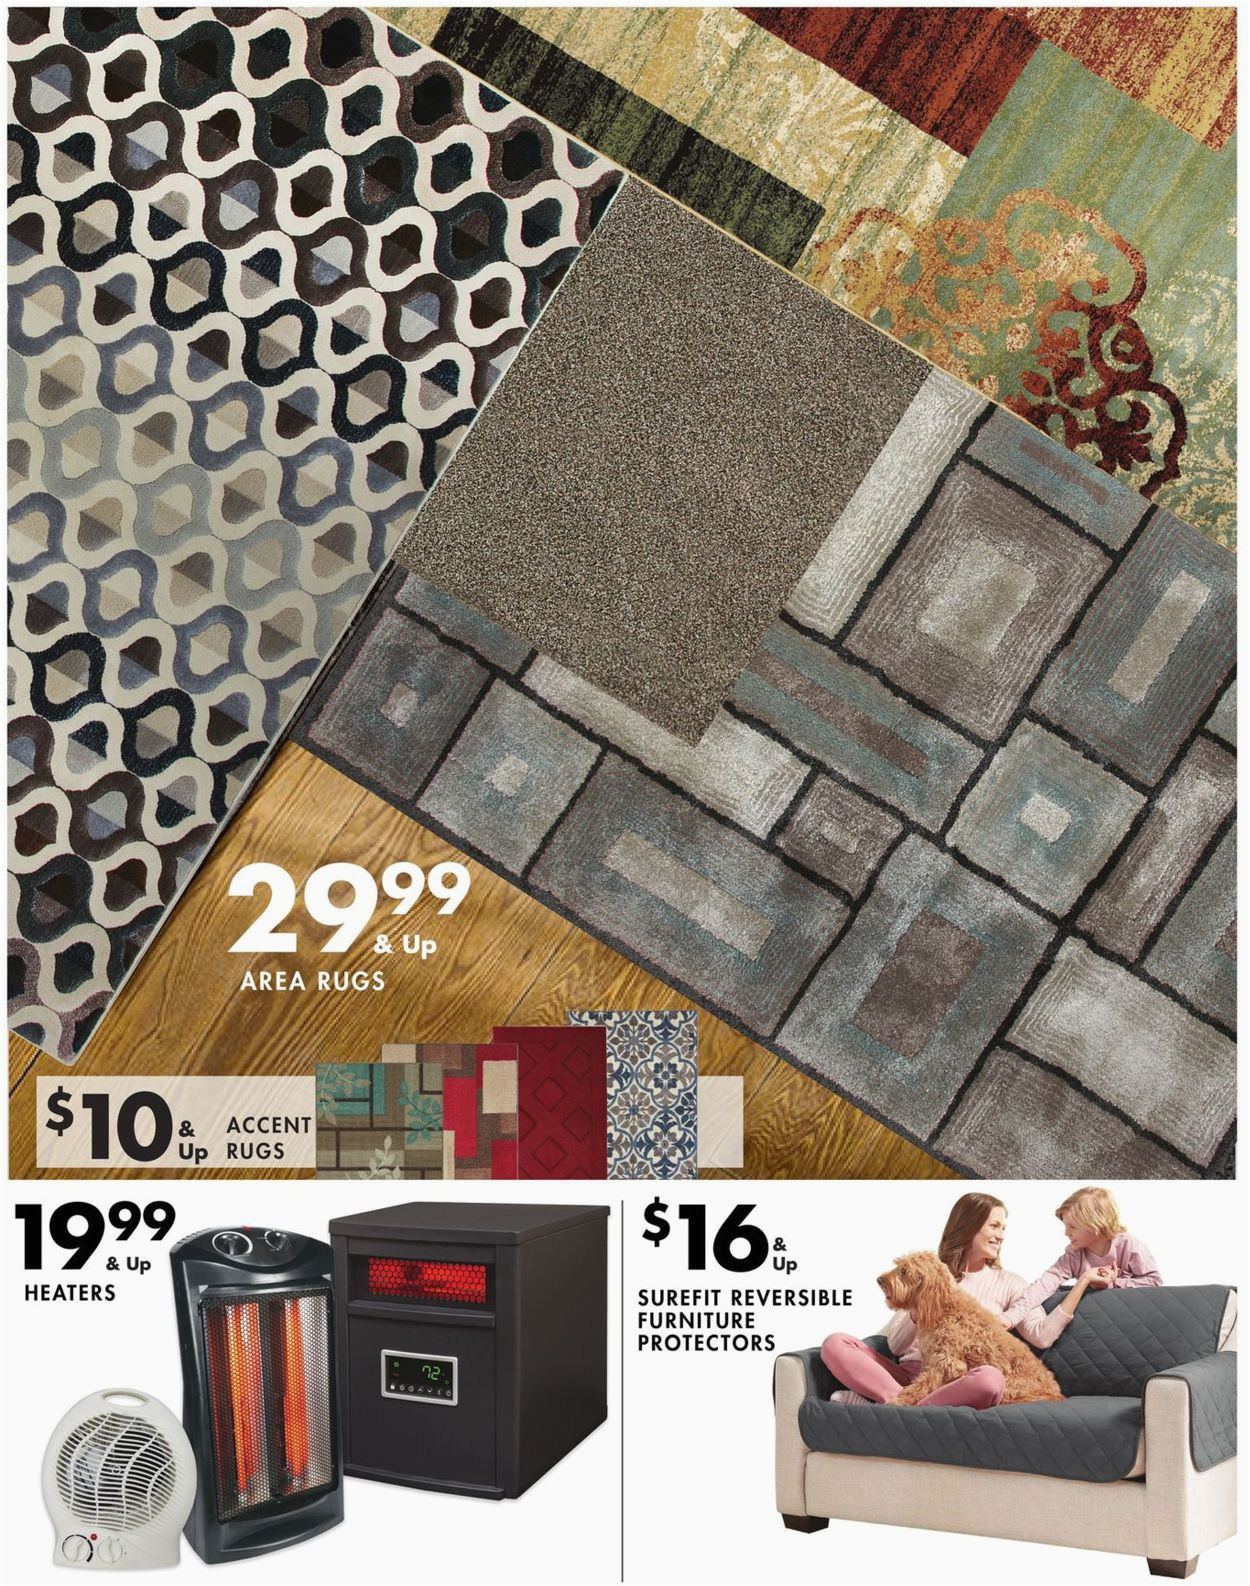 Big Lots Grey area Rugs Big Lots Current Weekly Ad 11 09 11 16 2019 [9] Frequent